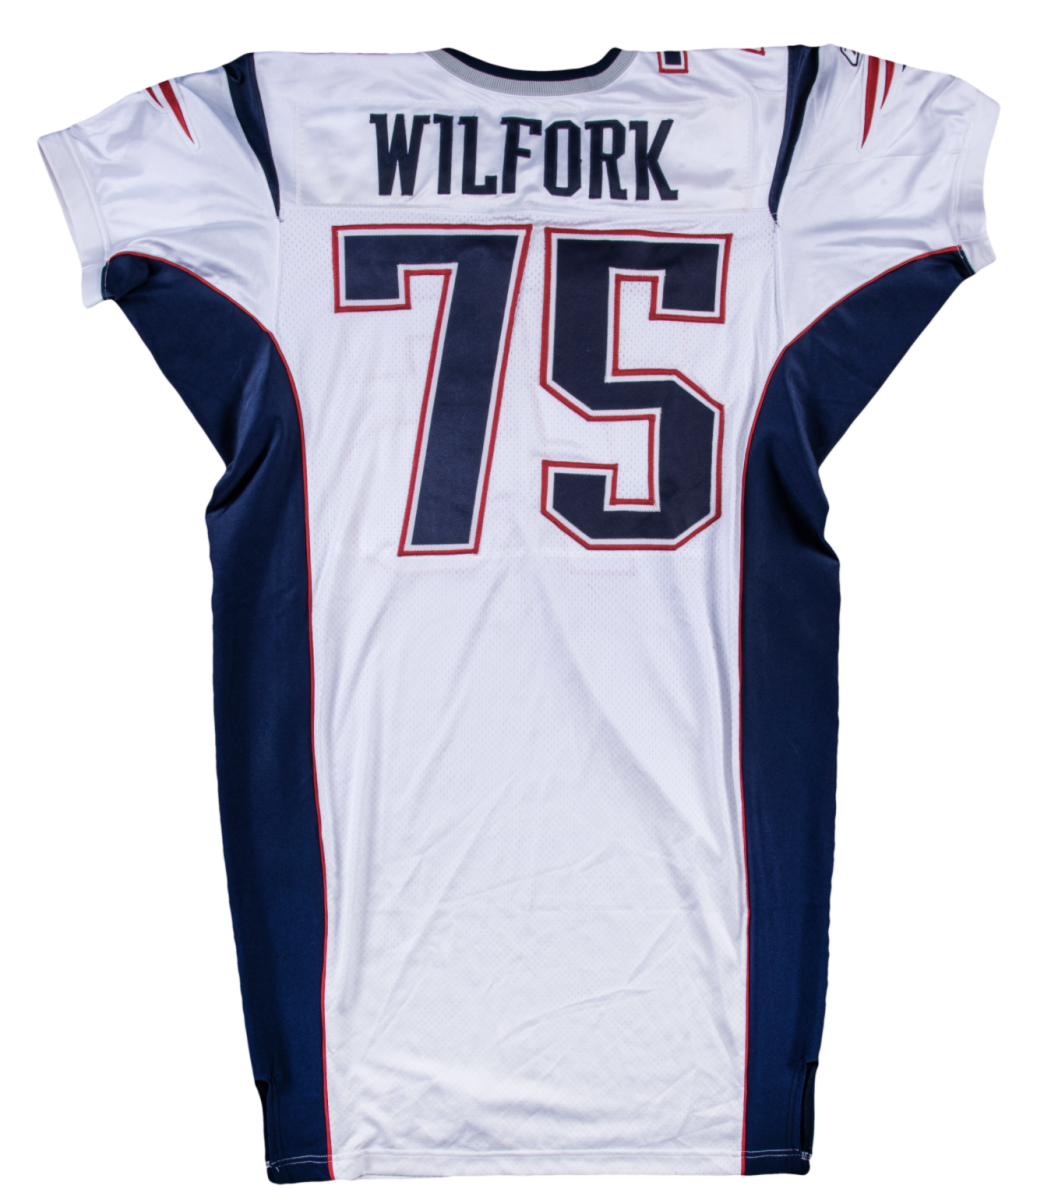 Vince Wilfork game-worn jersey up for bid at Goldin Auctions.